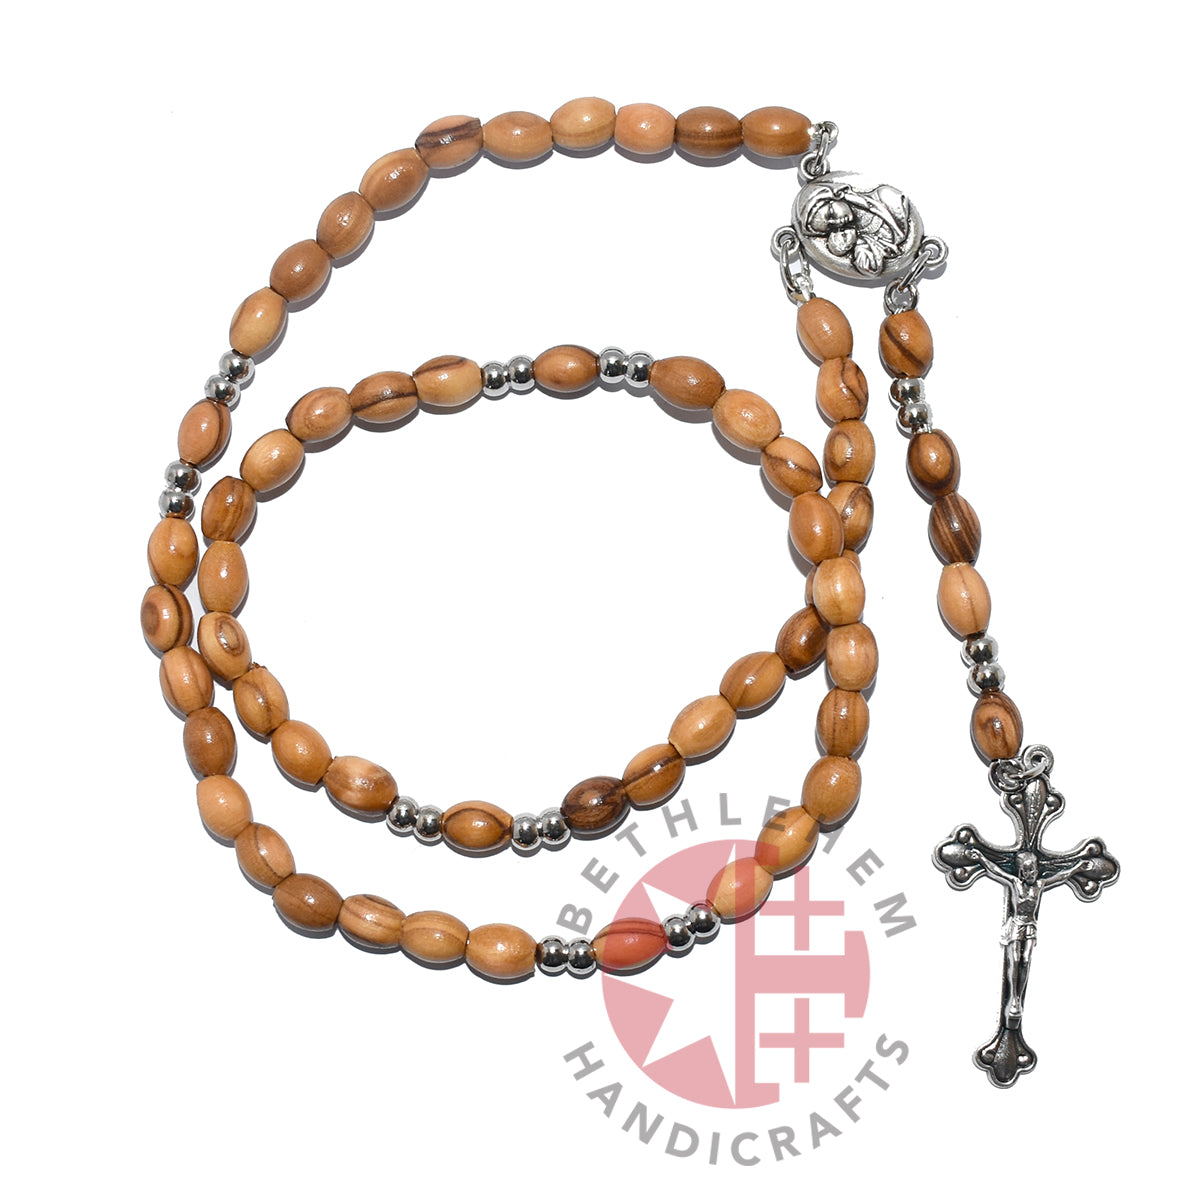 Olive Wood Rosary with Soil Special Edition